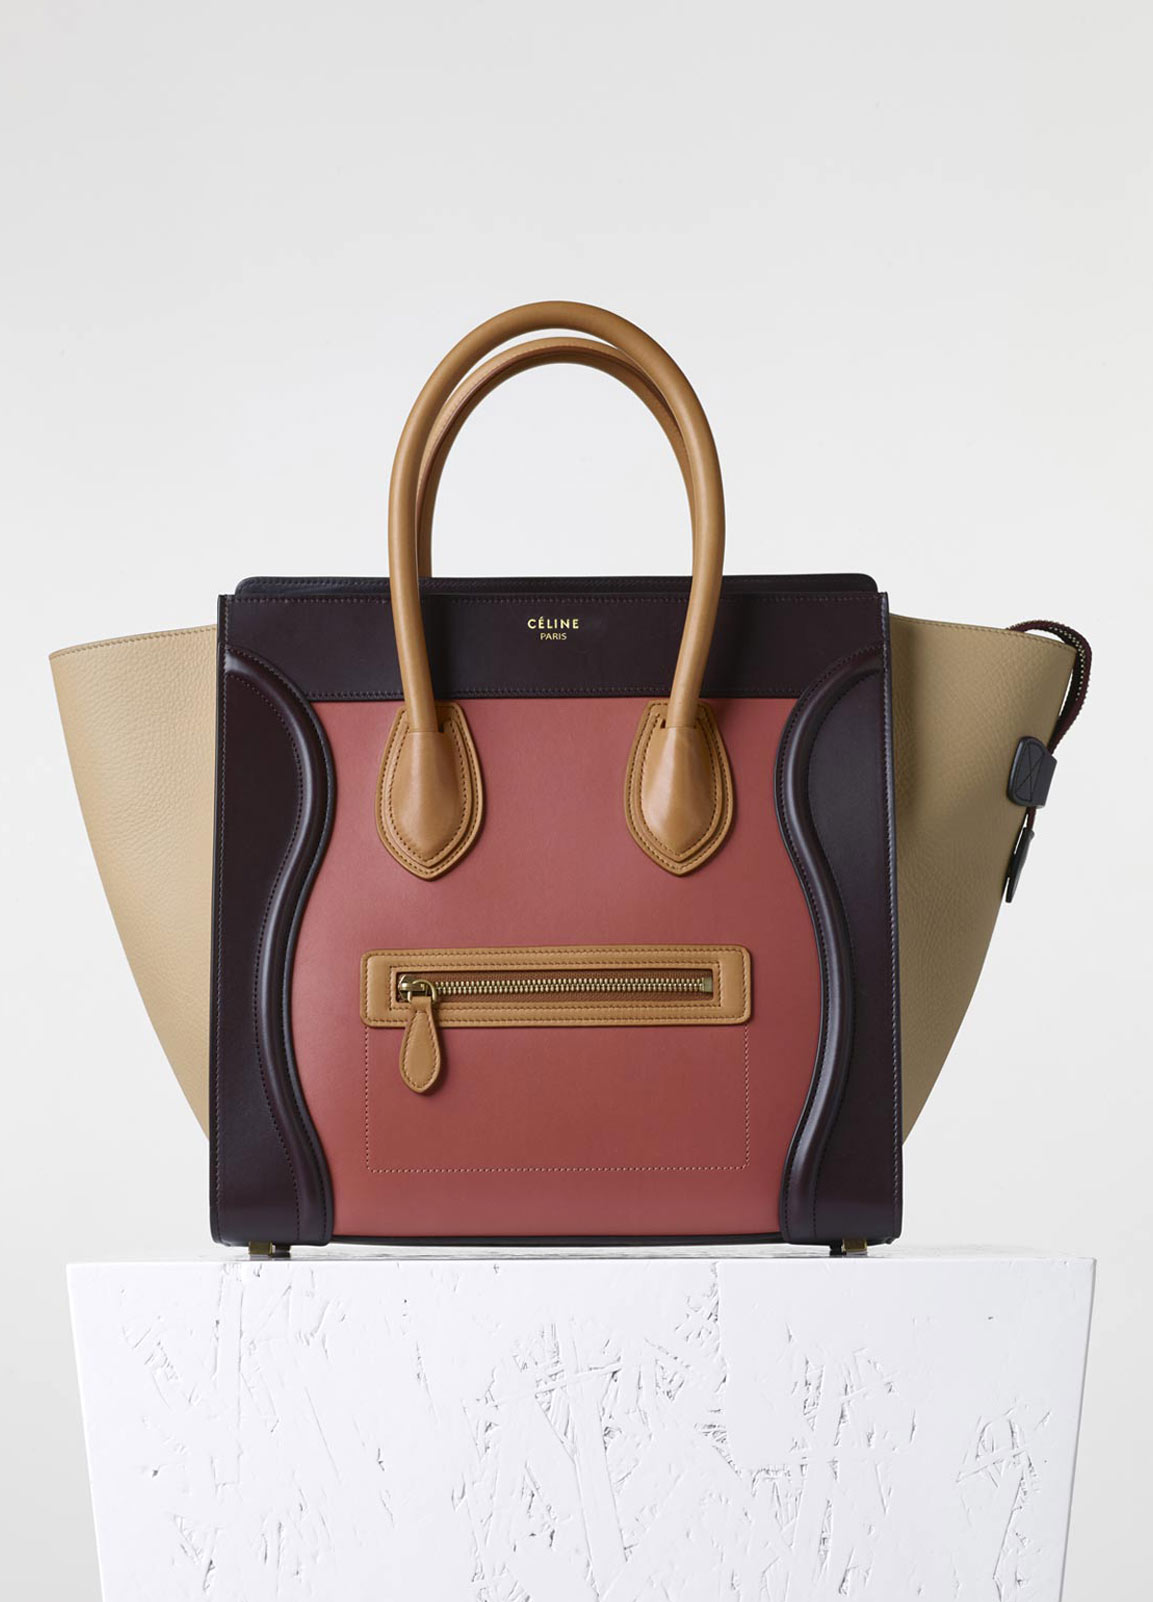 celine small luggage tote price - Celine 2015 Fall & Winter Bag Collection | Lollipuff